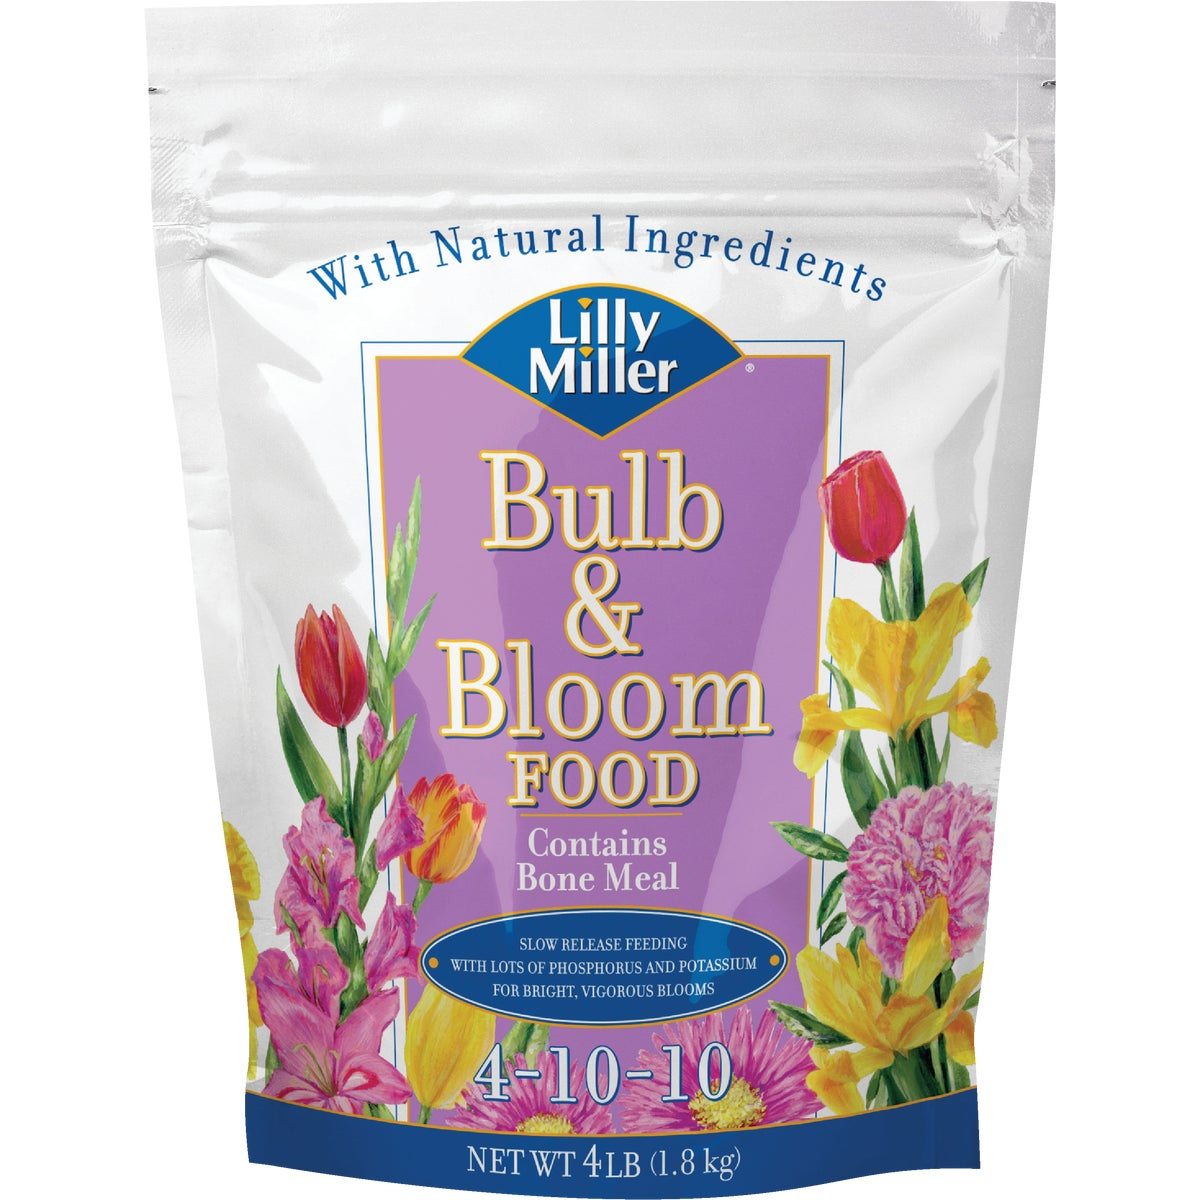 4LB BULB & BLOOM FOOD - 100099089 by Excel Marketing